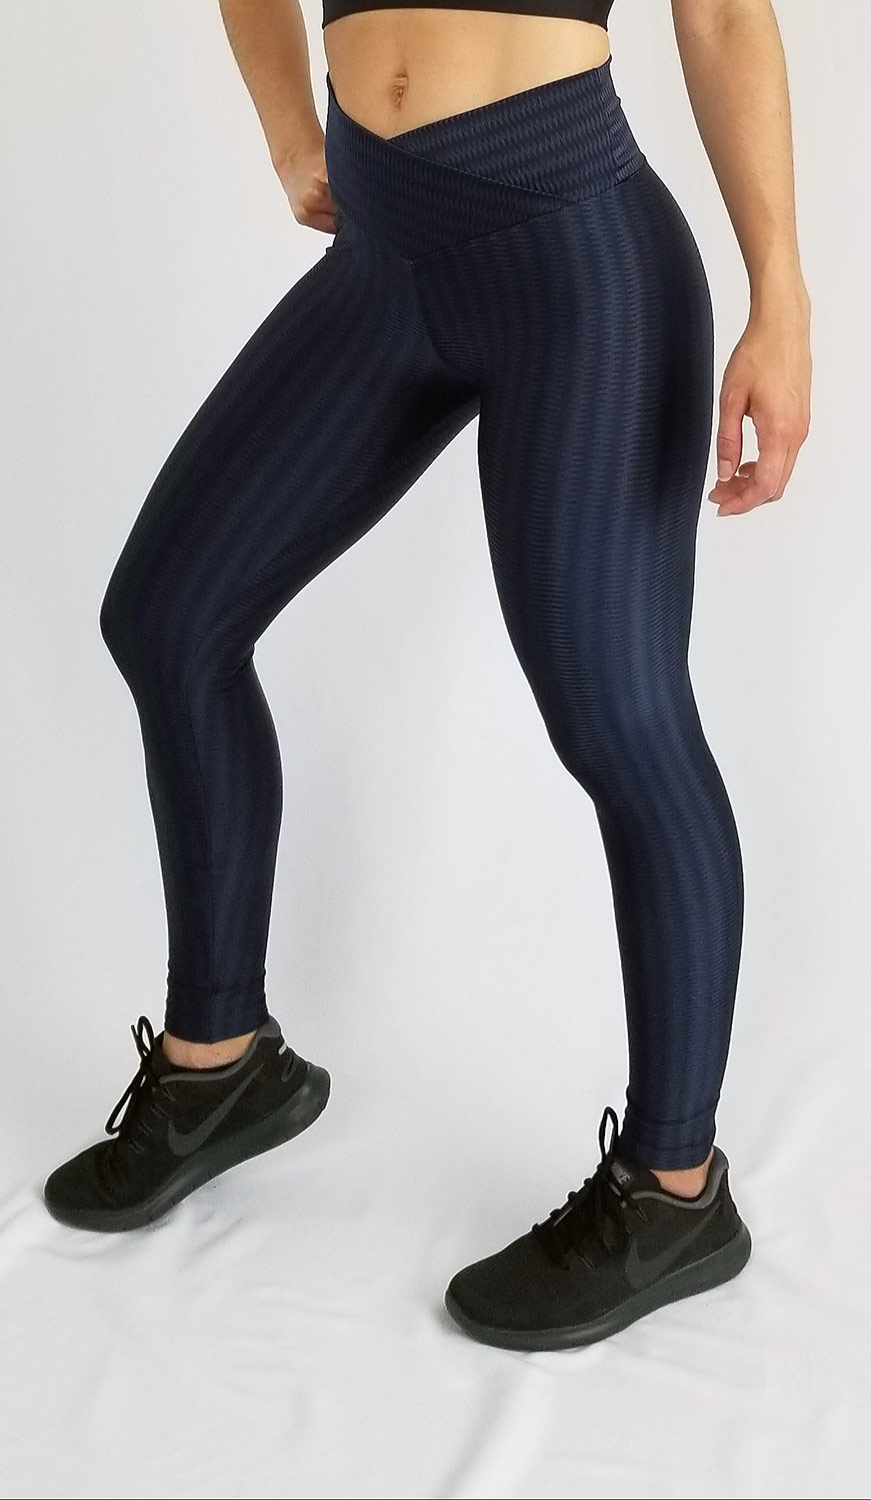 Metallic_Leggings_Navy_Blue_photo1